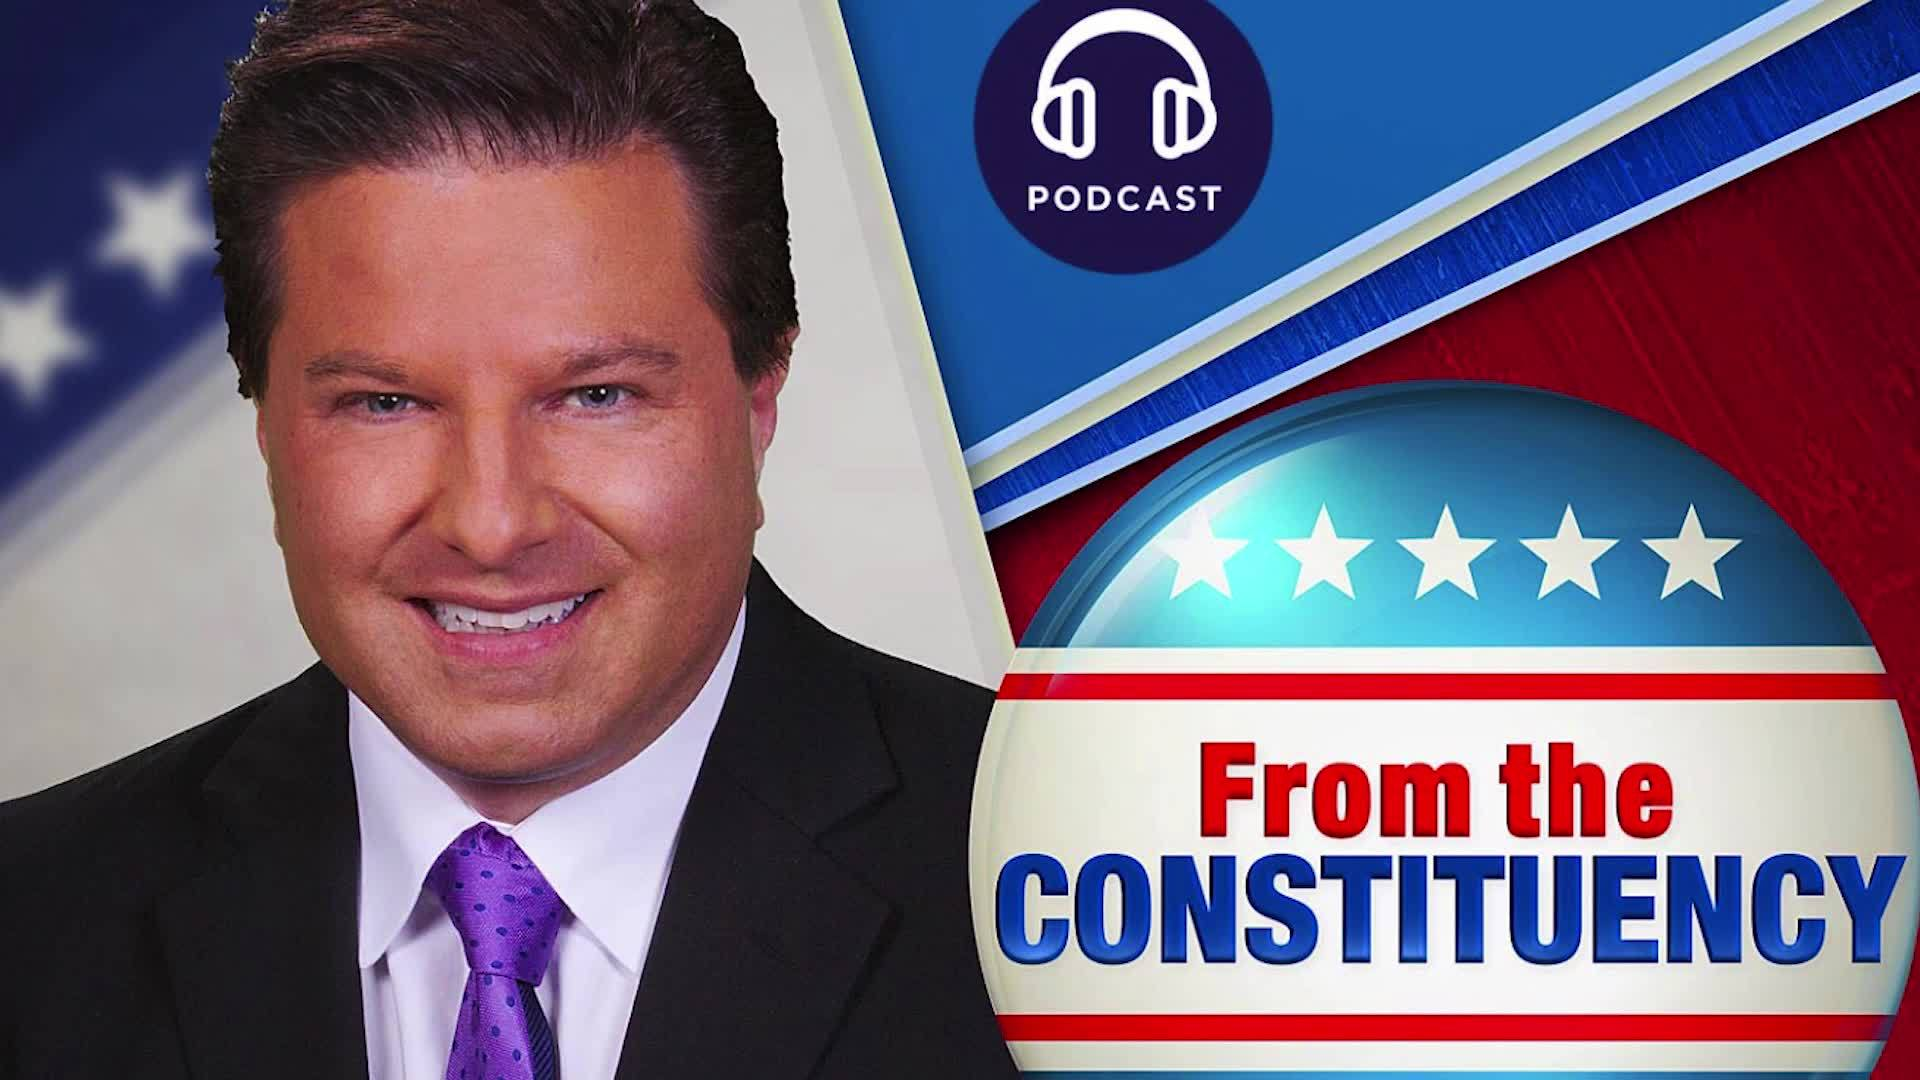 VIDEO PODCAST: From the Constituency with Dr. Brian Calfano